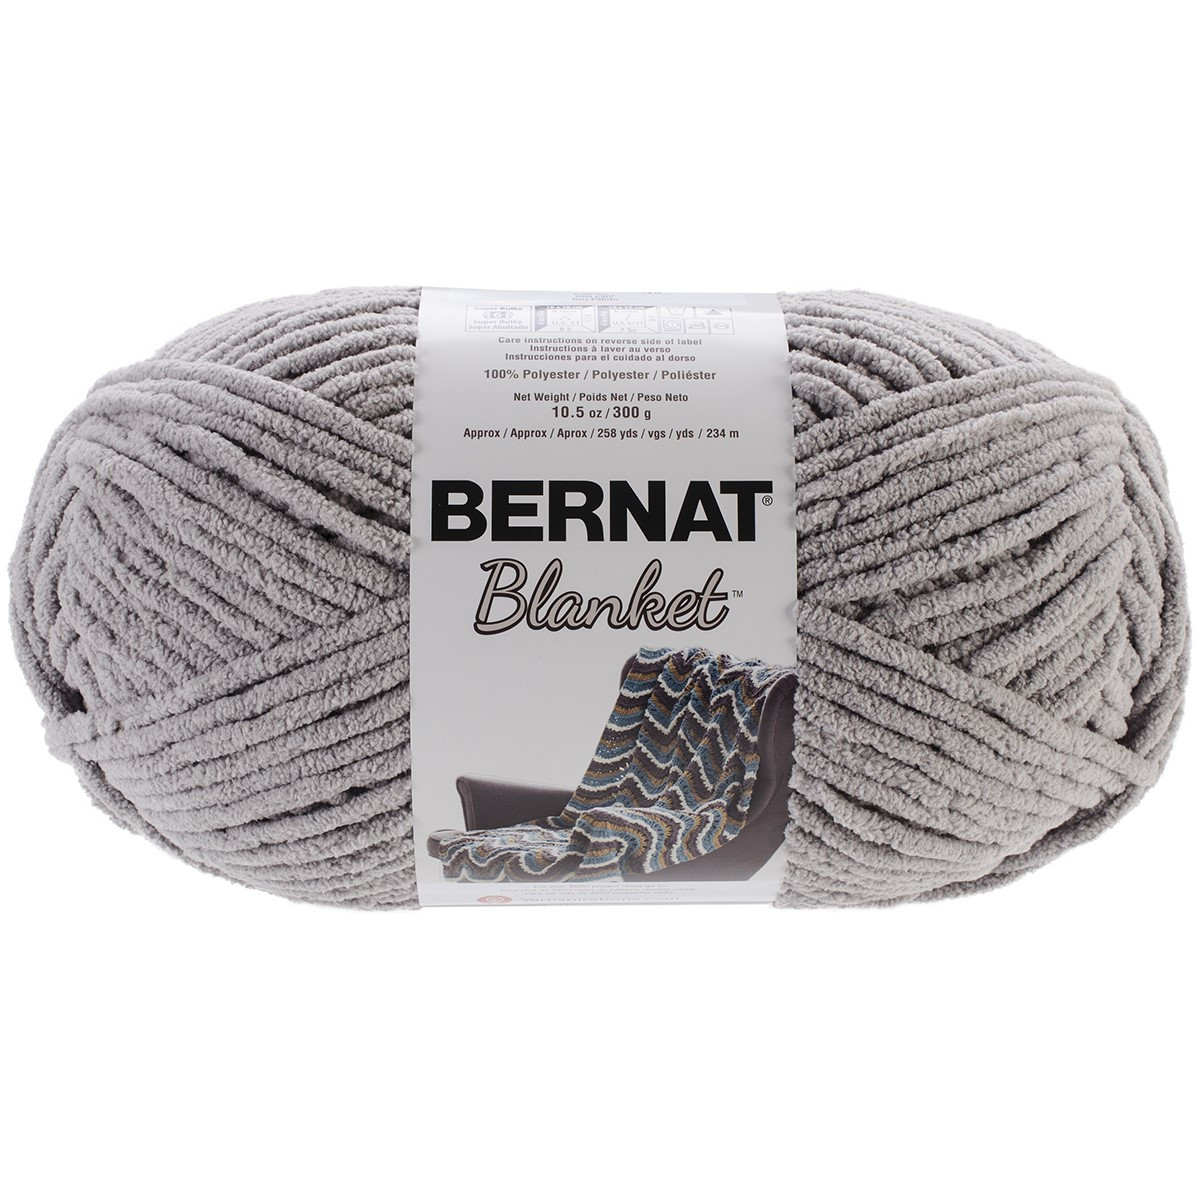 Bernat Chunky Yarn Big Ball Unique Bernat Blanket Big Ball Yarn Pale Grey Of Top 43 Pictures Bernat Chunky Yarn Big Ball